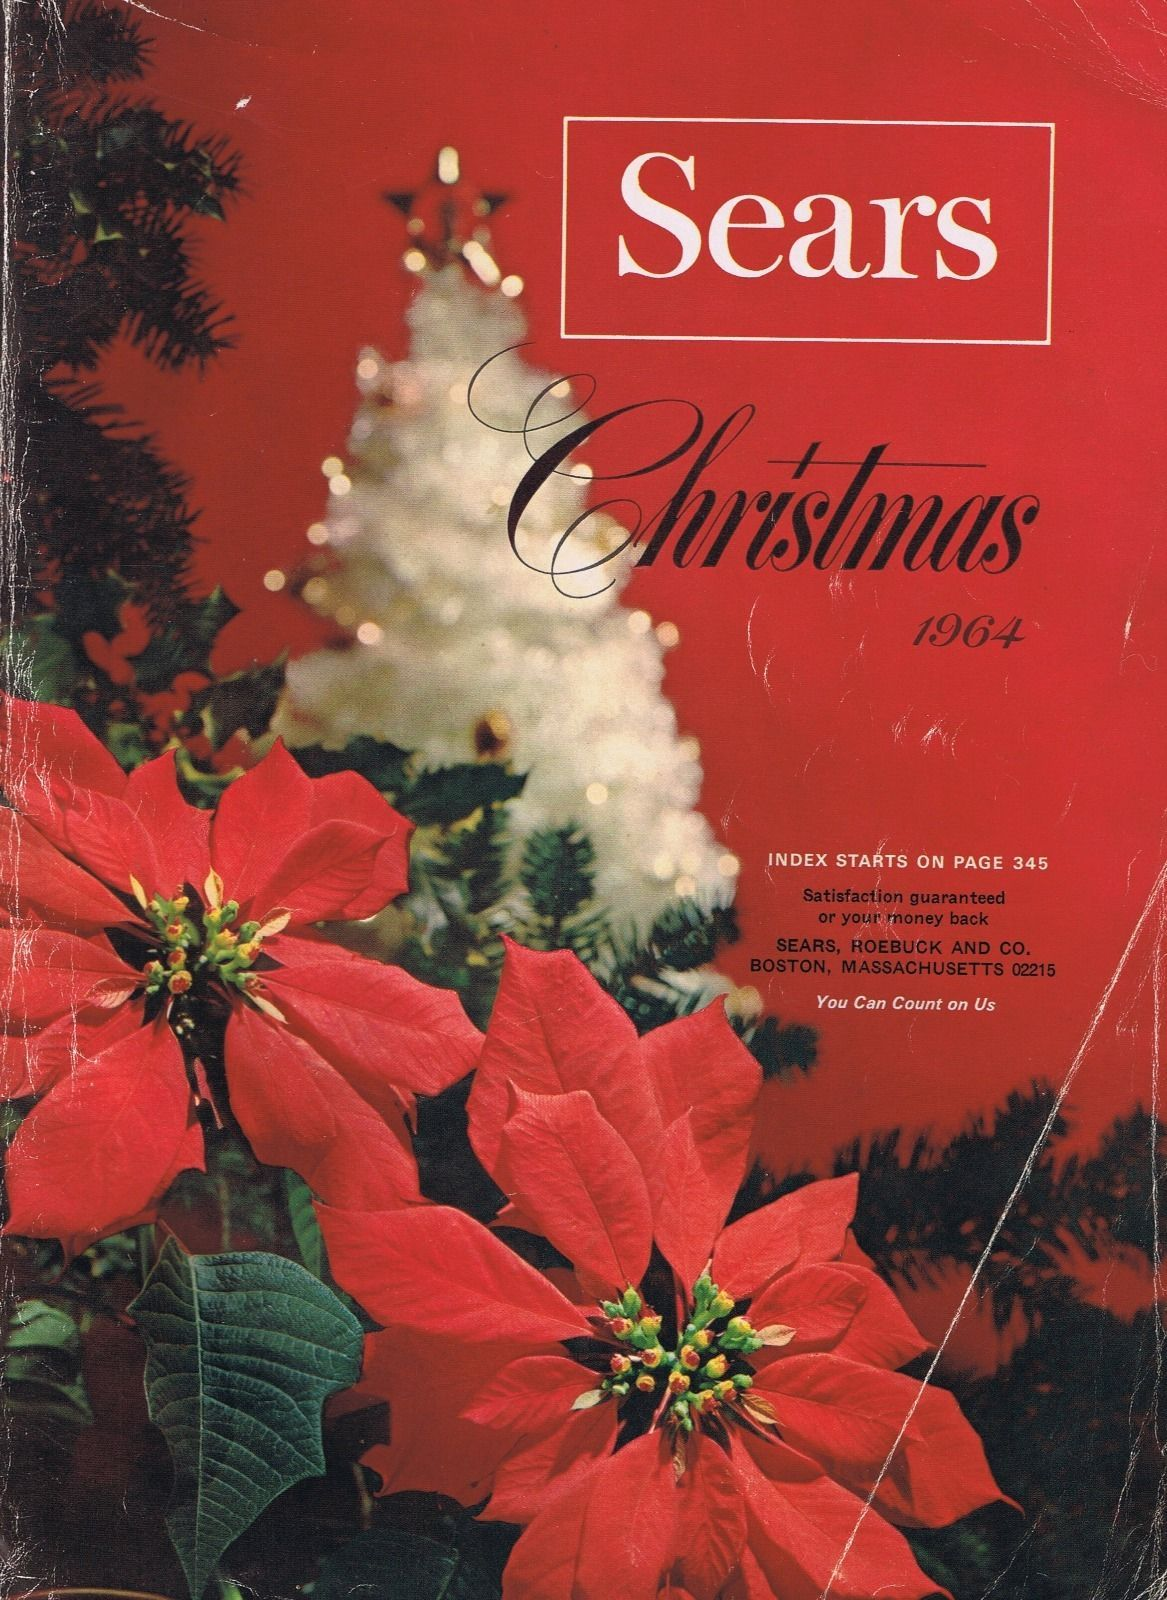 1964 sears christmas wishbook catalog ebay - Sears Christmas Catalog